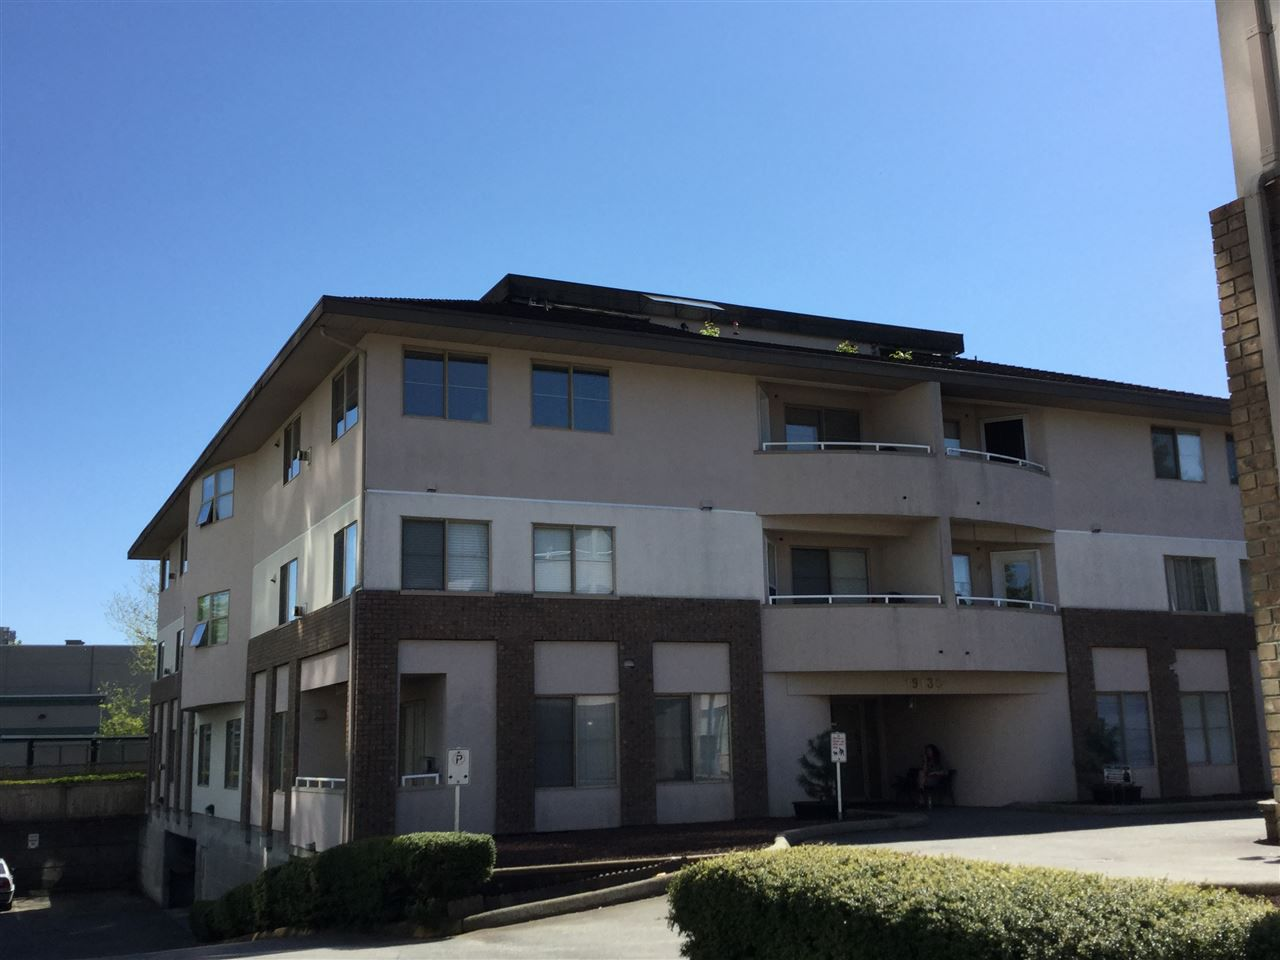 """Main Photo: 302 19130 FORD Road in Pitt Meadows: Central Meadows Condo for sale in """"BEACON SQUARE"""" : MLS®# R2169590"""